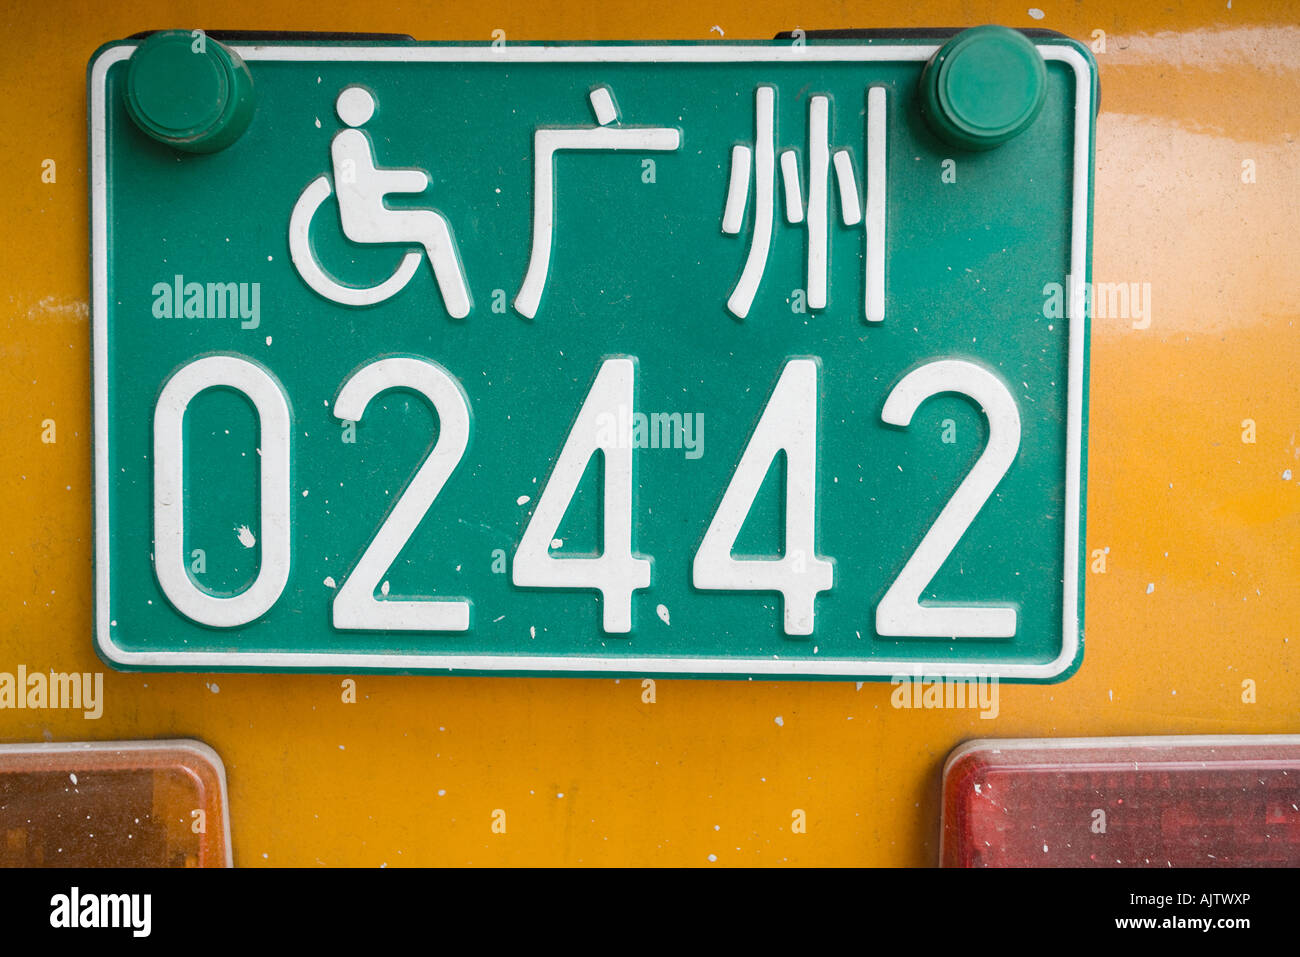 Chinese handicapped license plate - Stock Image